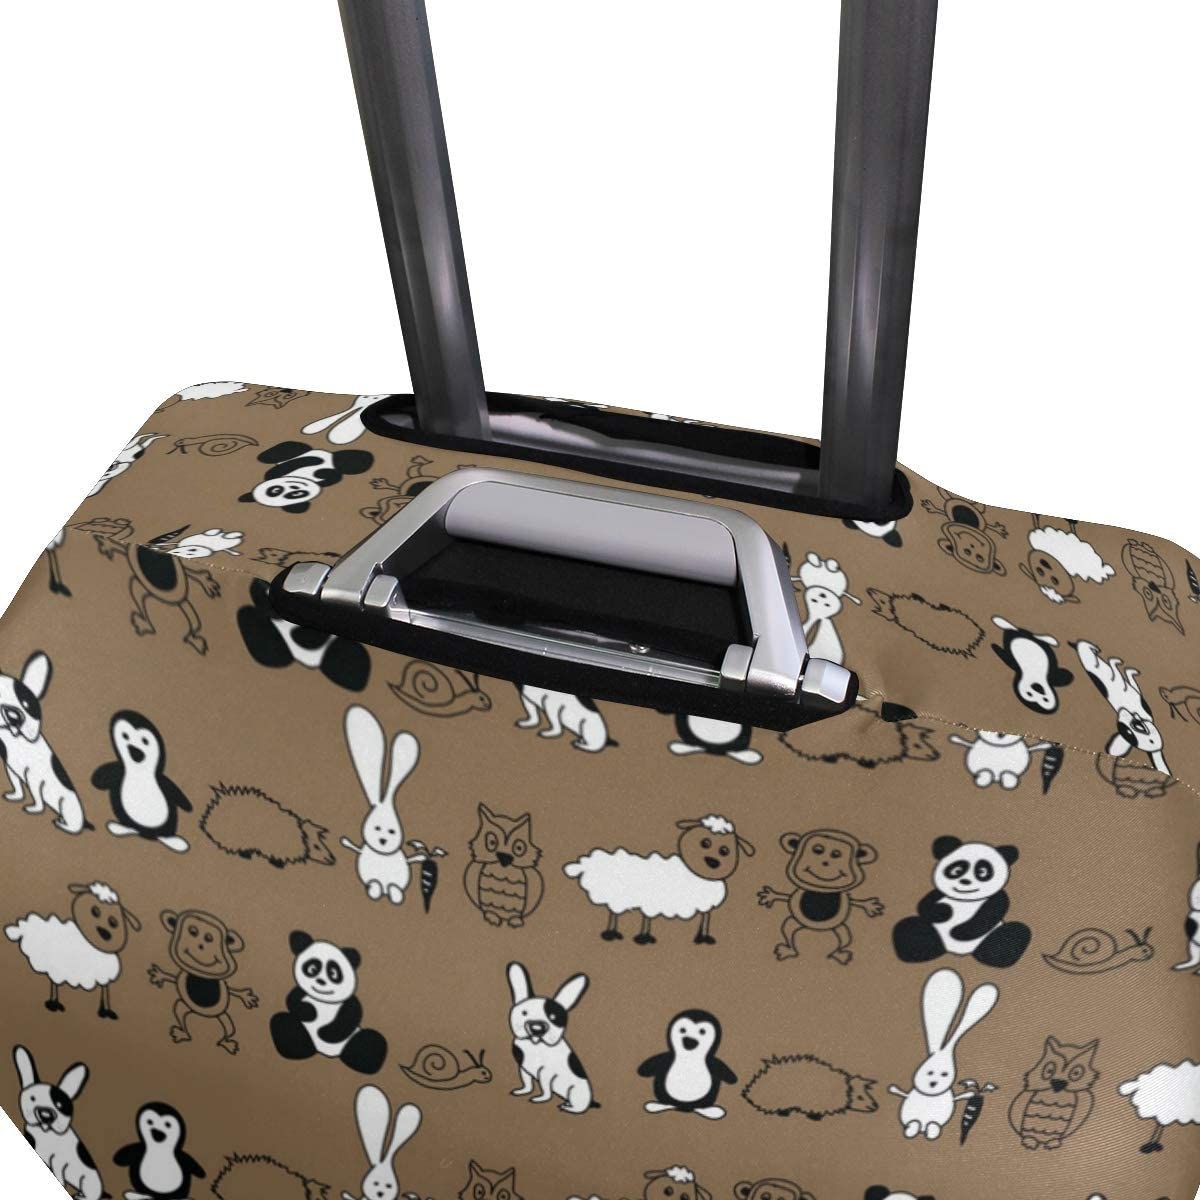 Rabbit Panda Monkey Penguin Travel Luggage Protector Case Suitcase Protector For Man/&Woman Fits 18-32 Inch Luggage